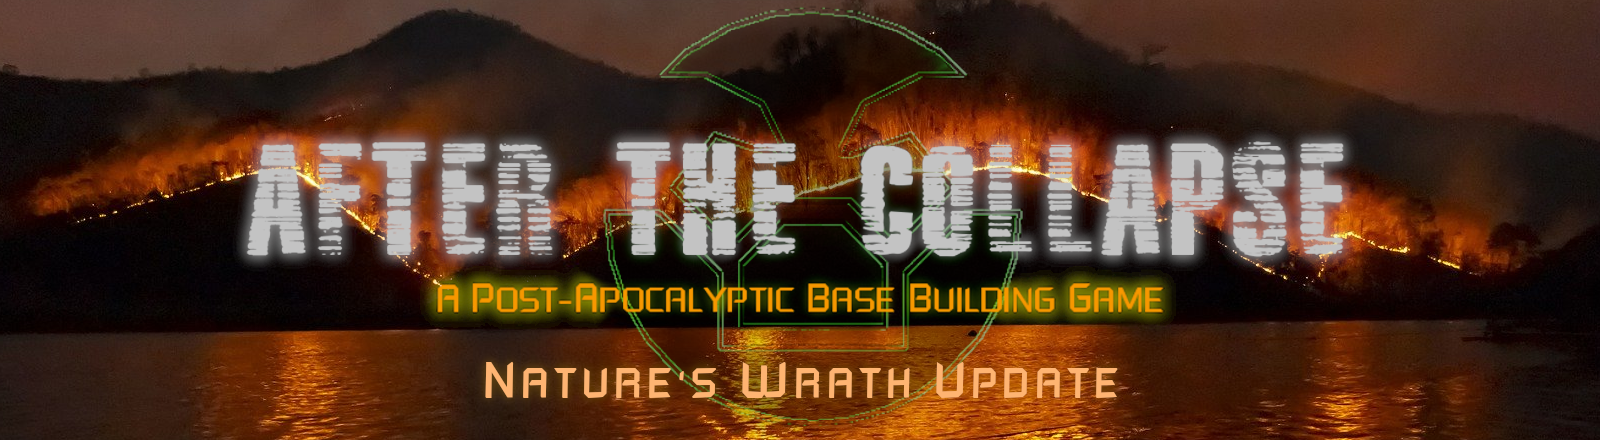 After The Collapse 0.8.6: Nature's Wrath